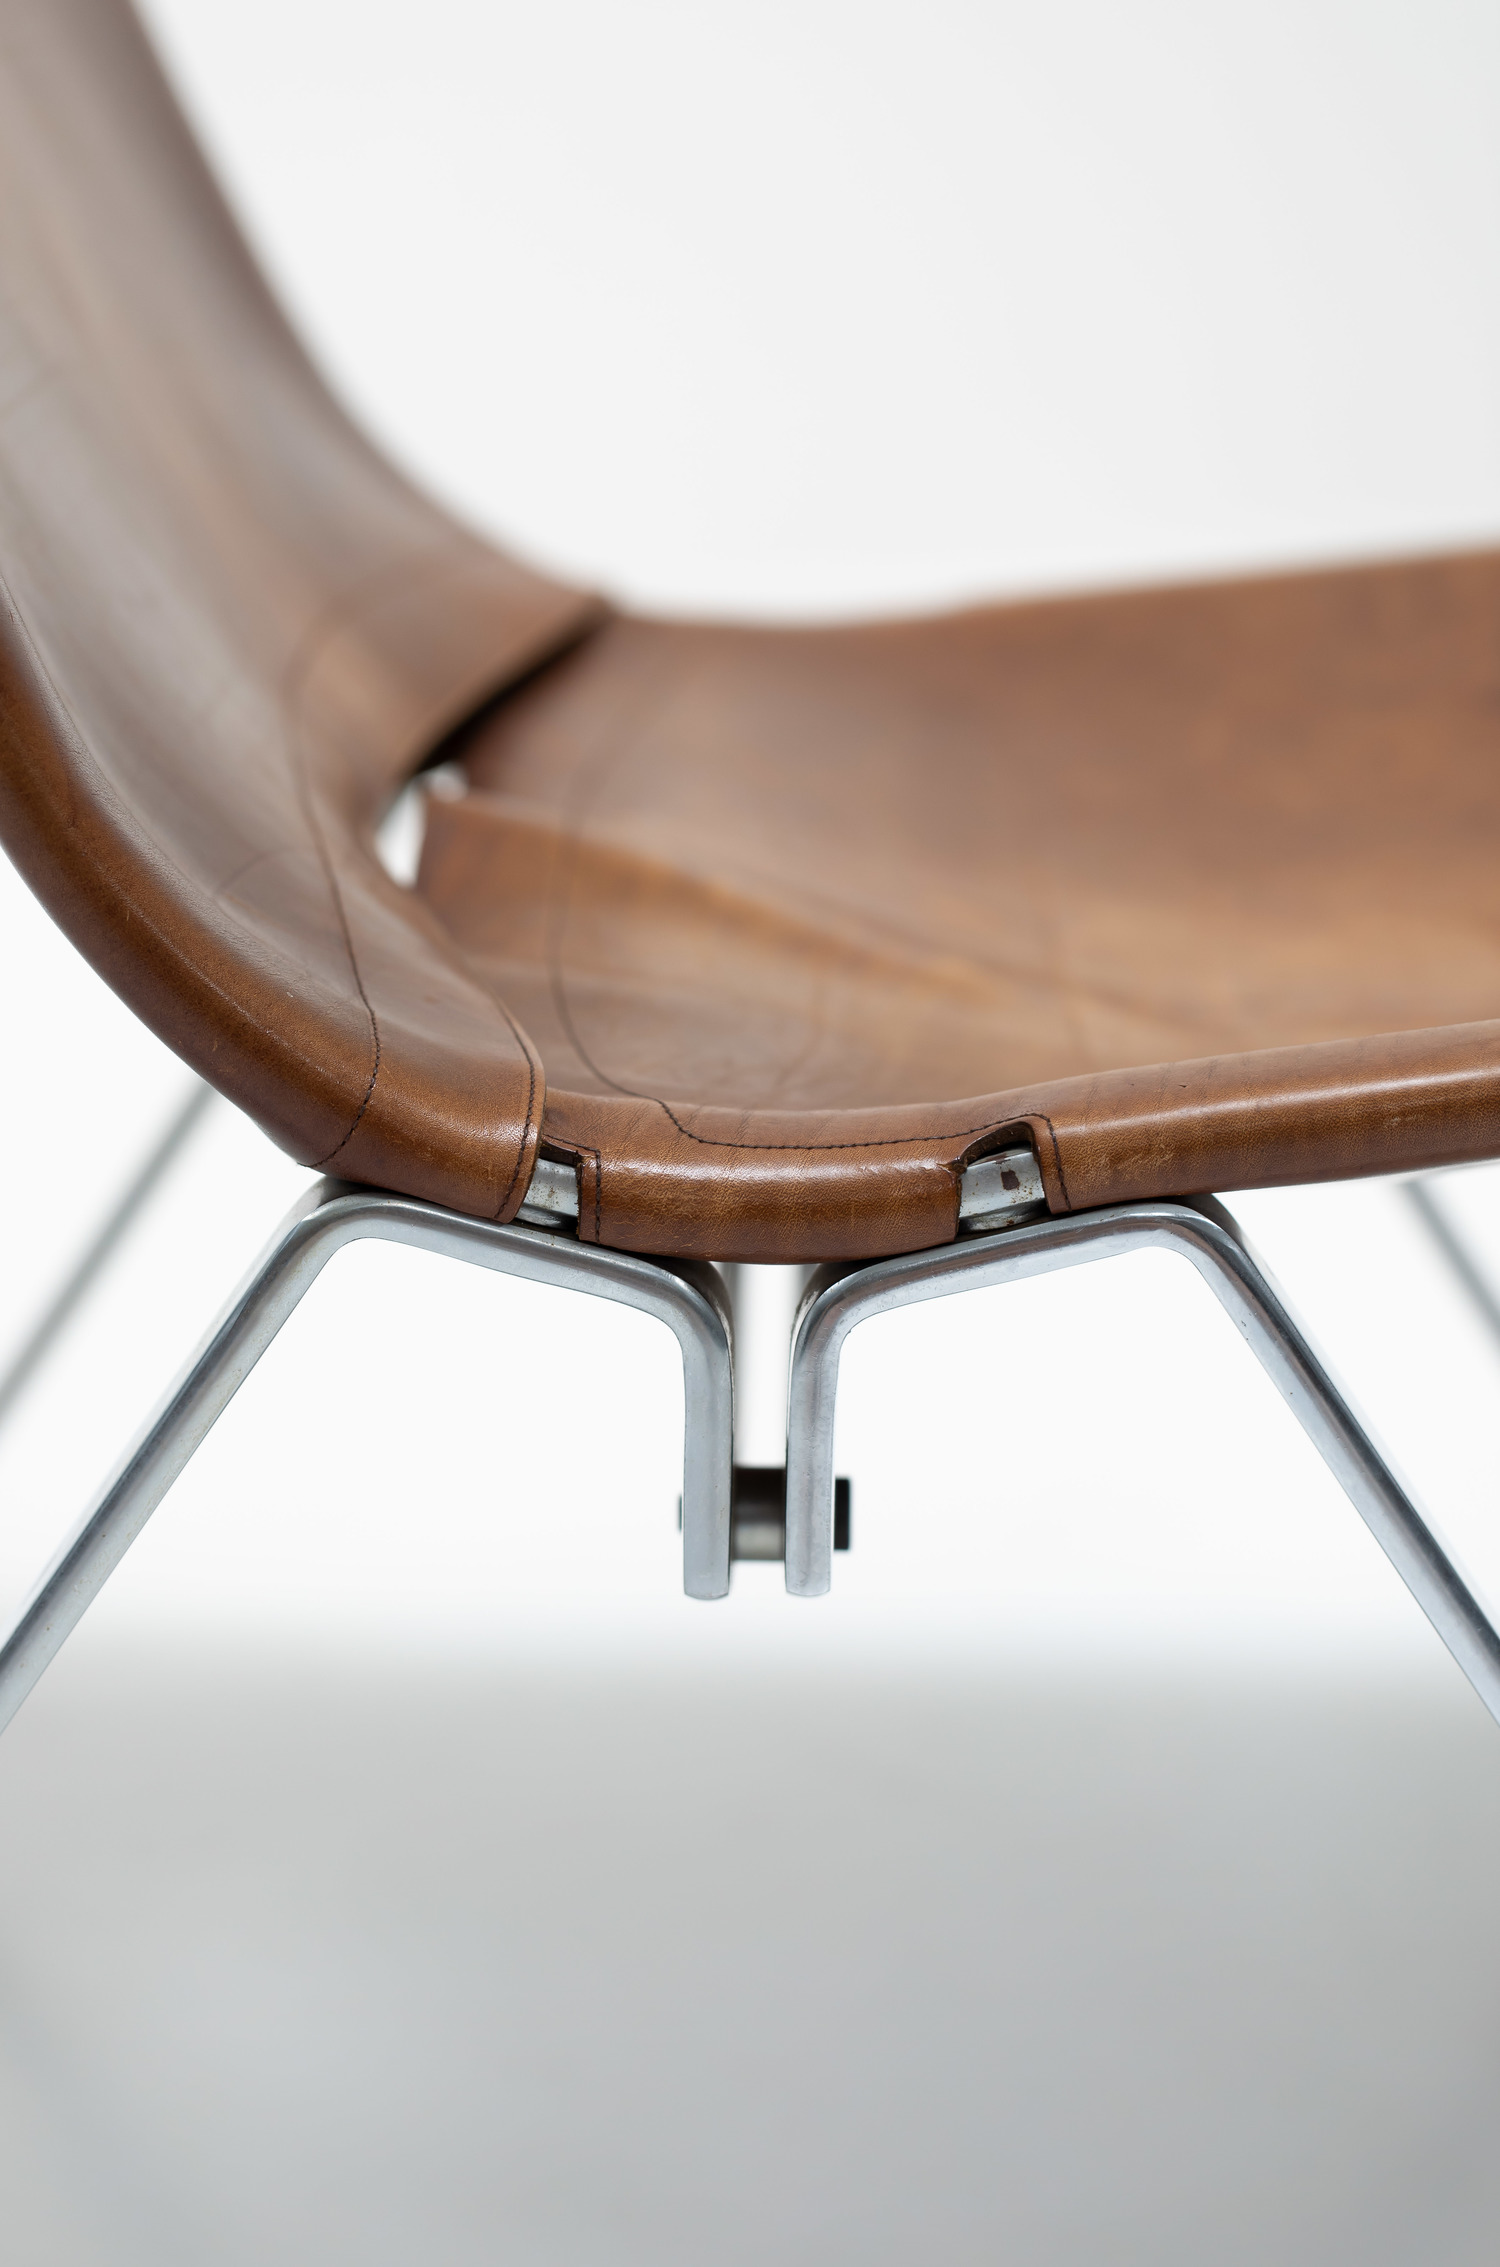 Easy Chair by P. Fabricius and J. Kastholm for Arnold Exclusiv